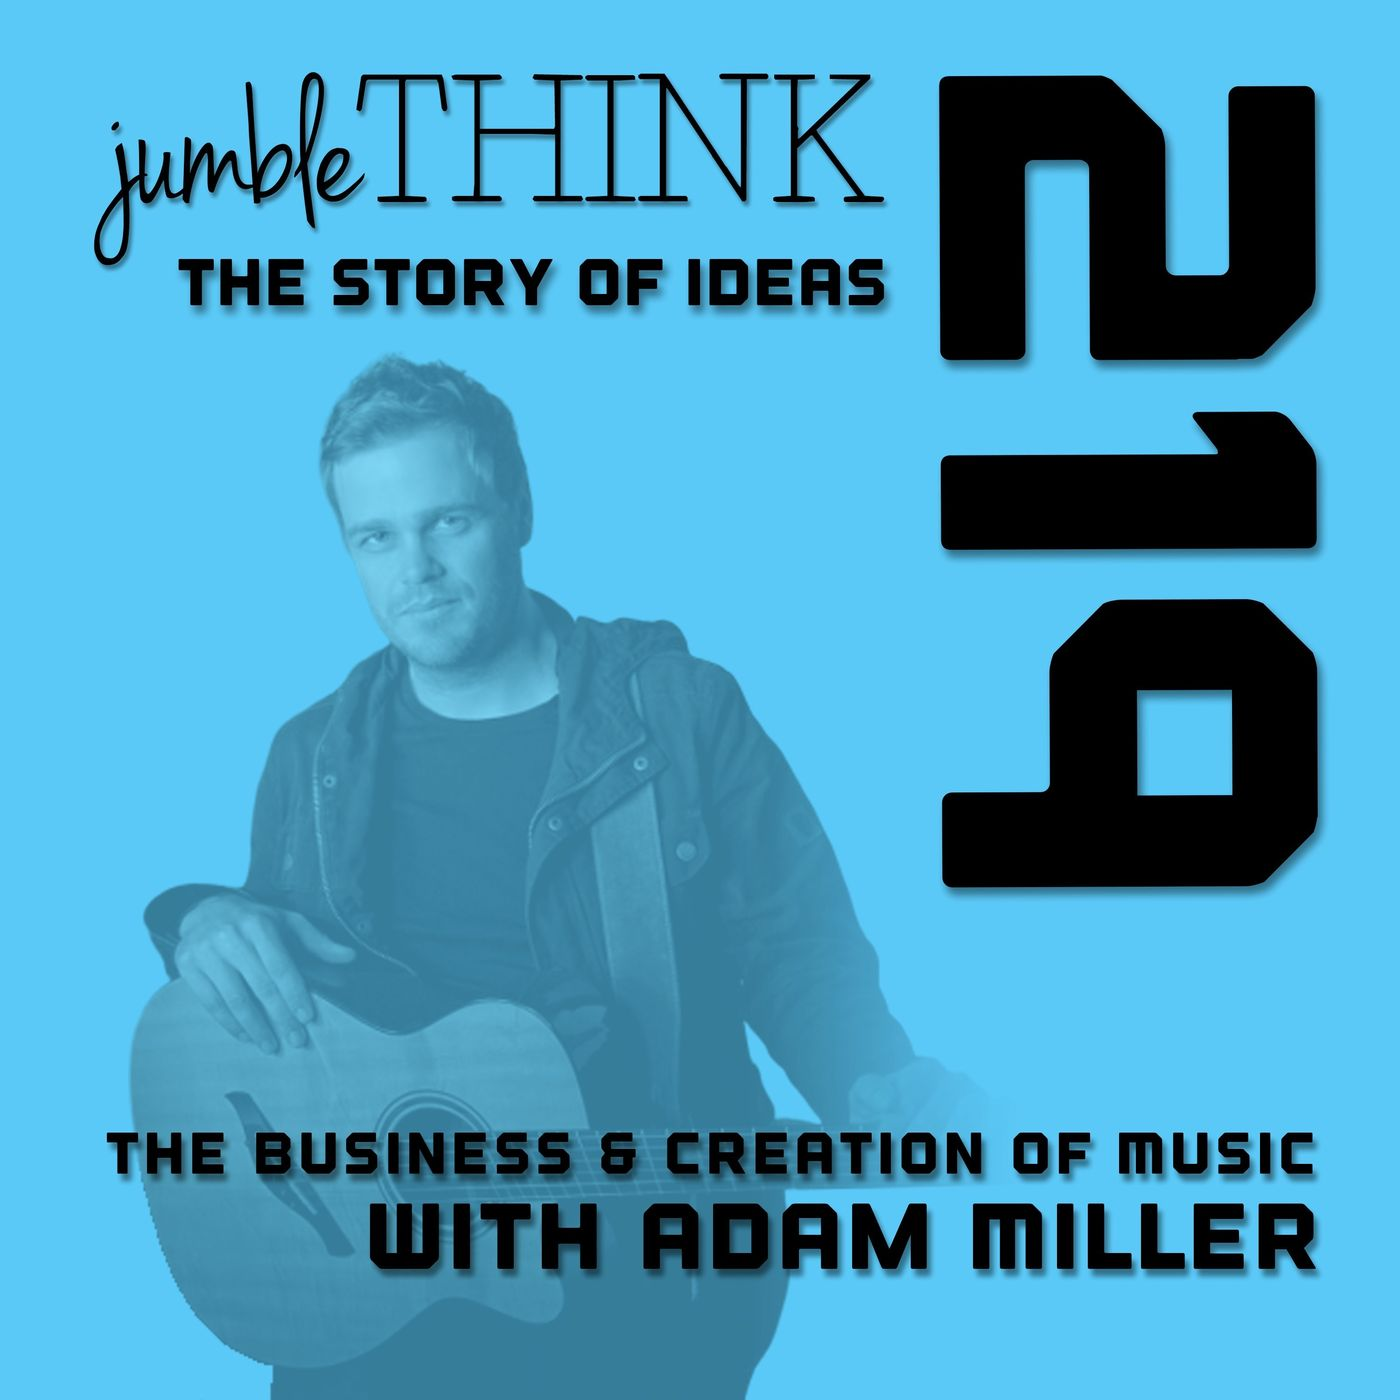 The Business and Creation of Music with Adam Miller